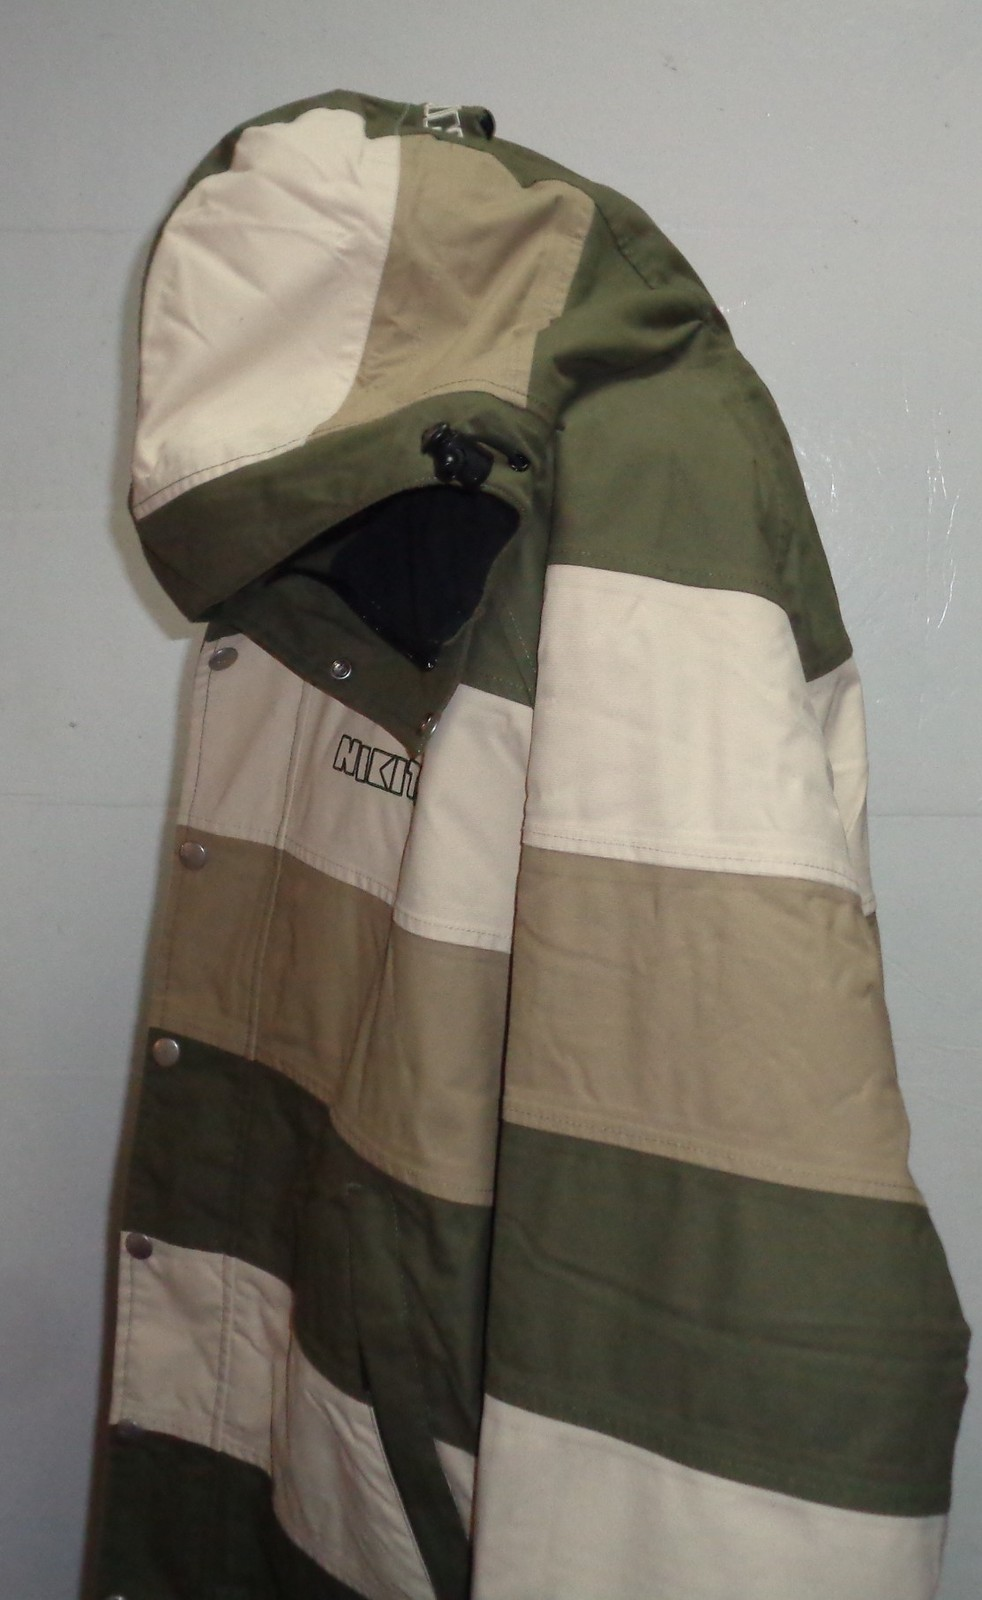 Nikita Women's Coat Jacket Hoodie Army Gray & Green Striped NWOT SZ M